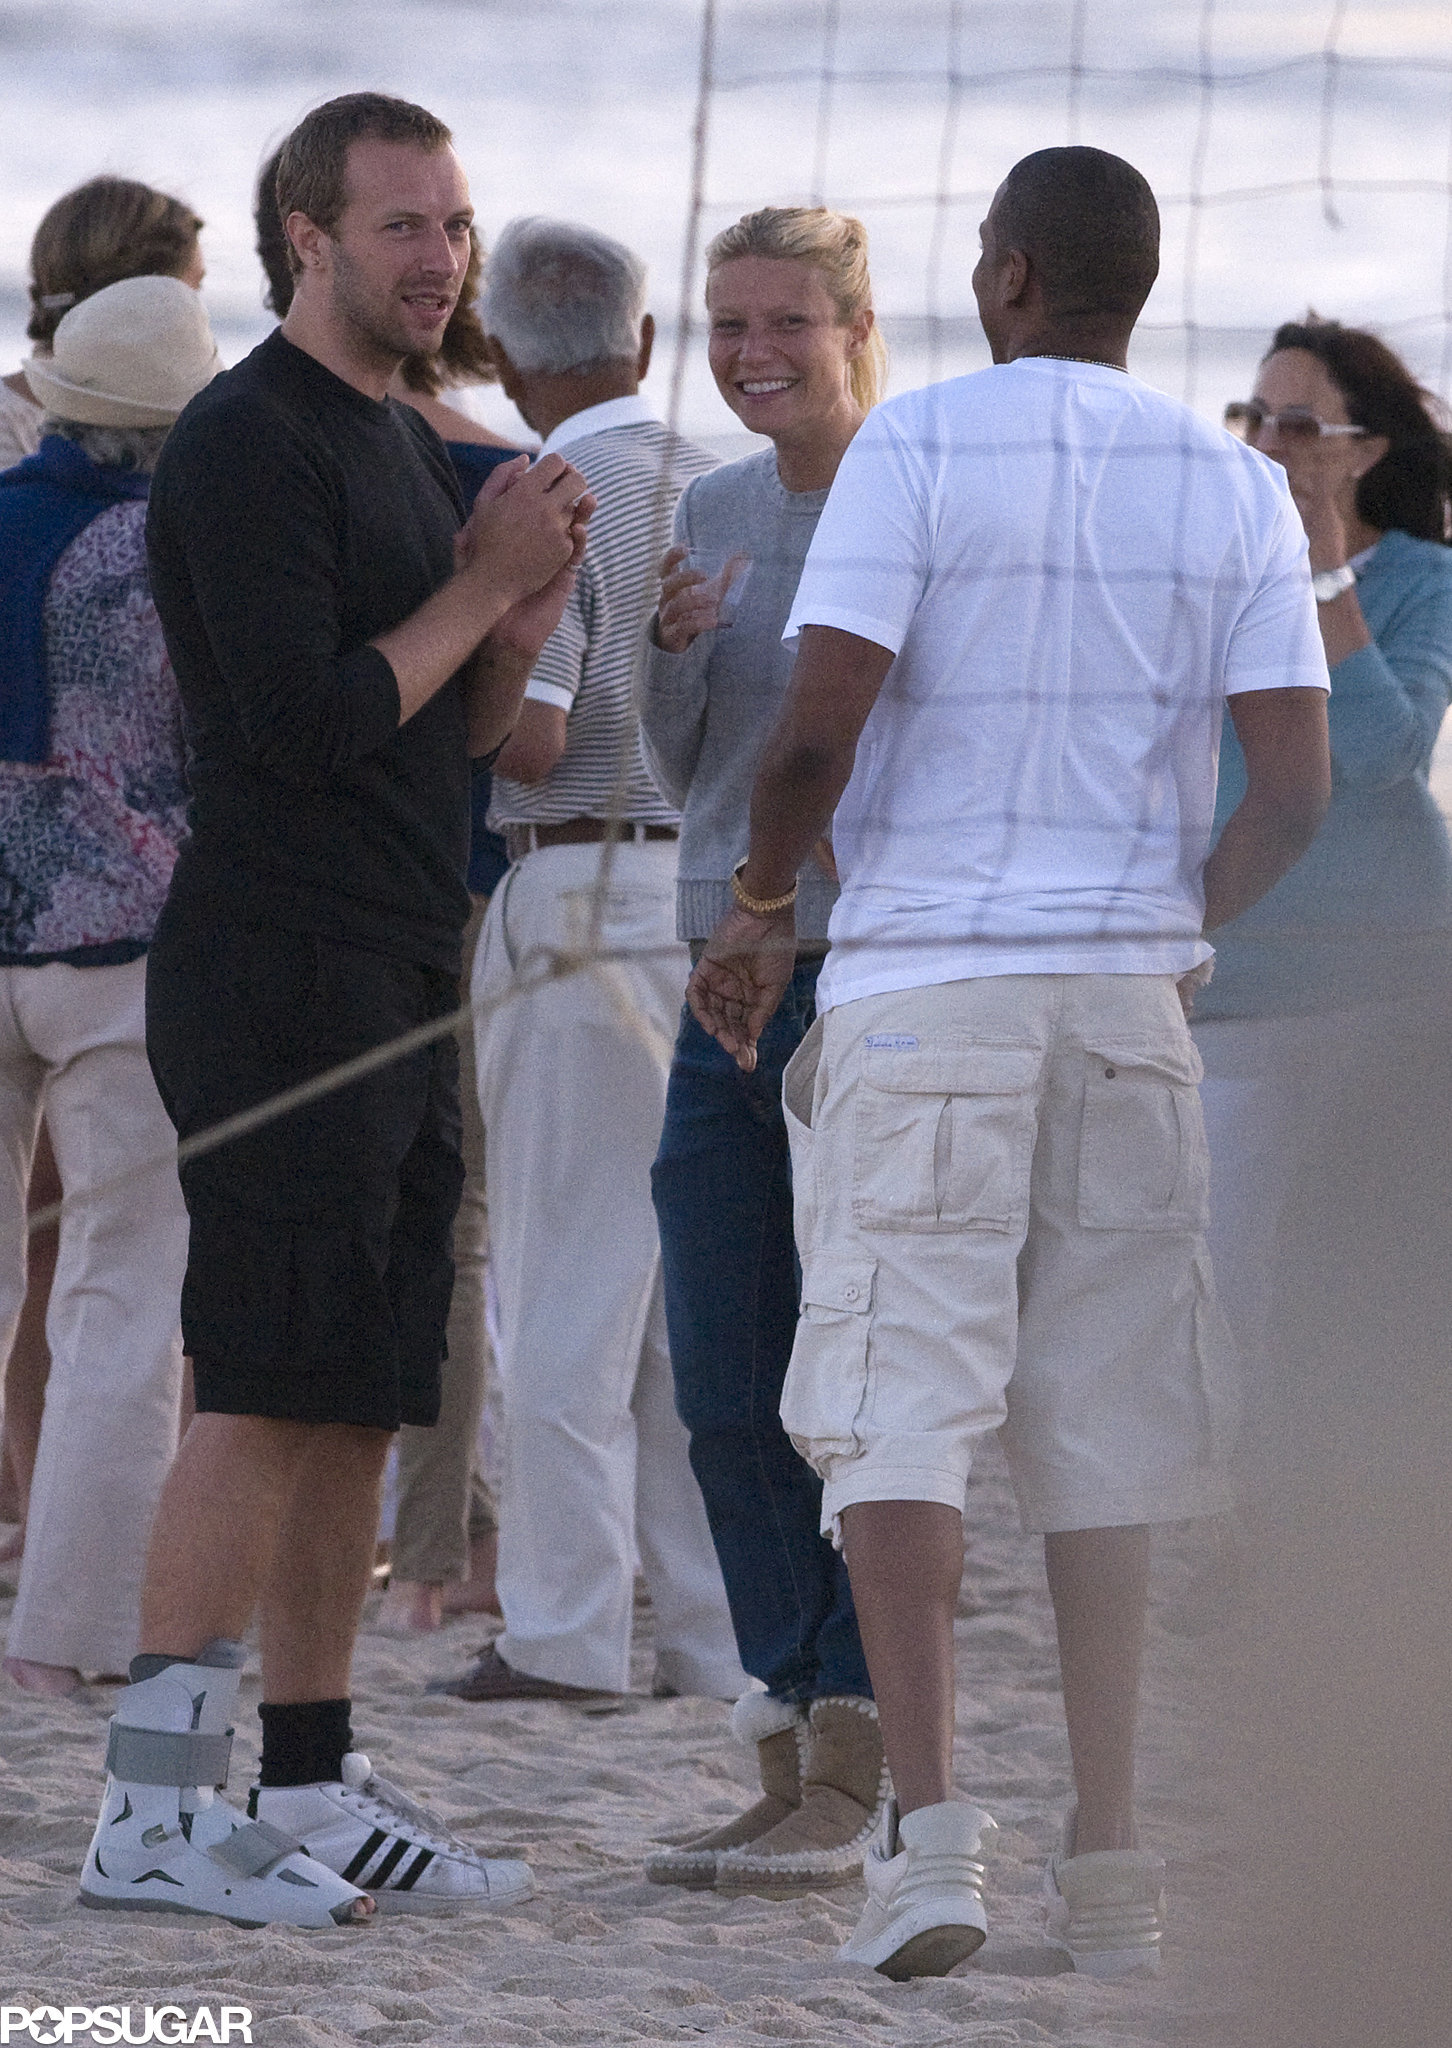 When they partied on the beach in 2010 with Jay Z.